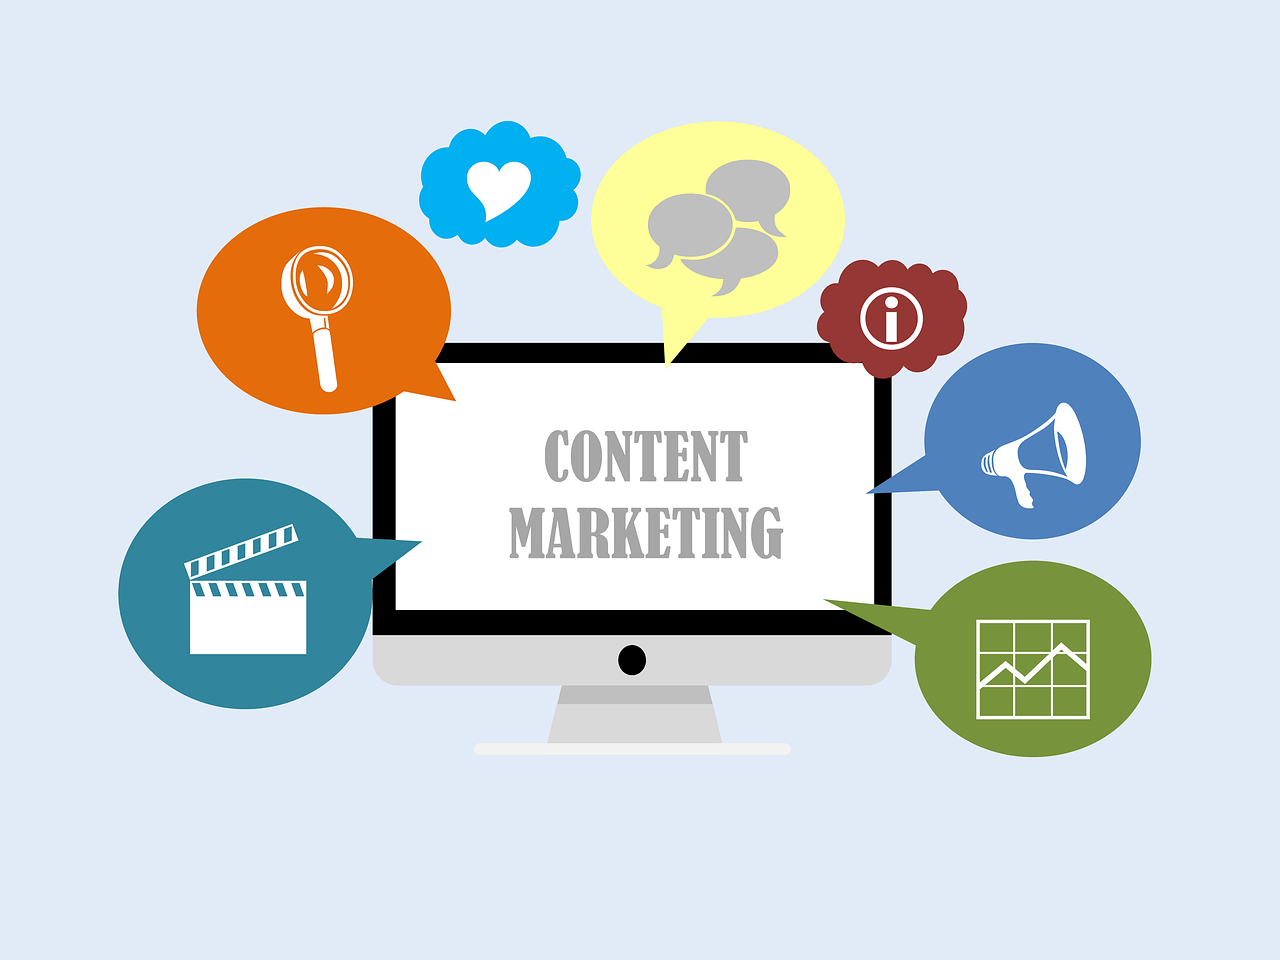 Content Marketing helps SEO (1)